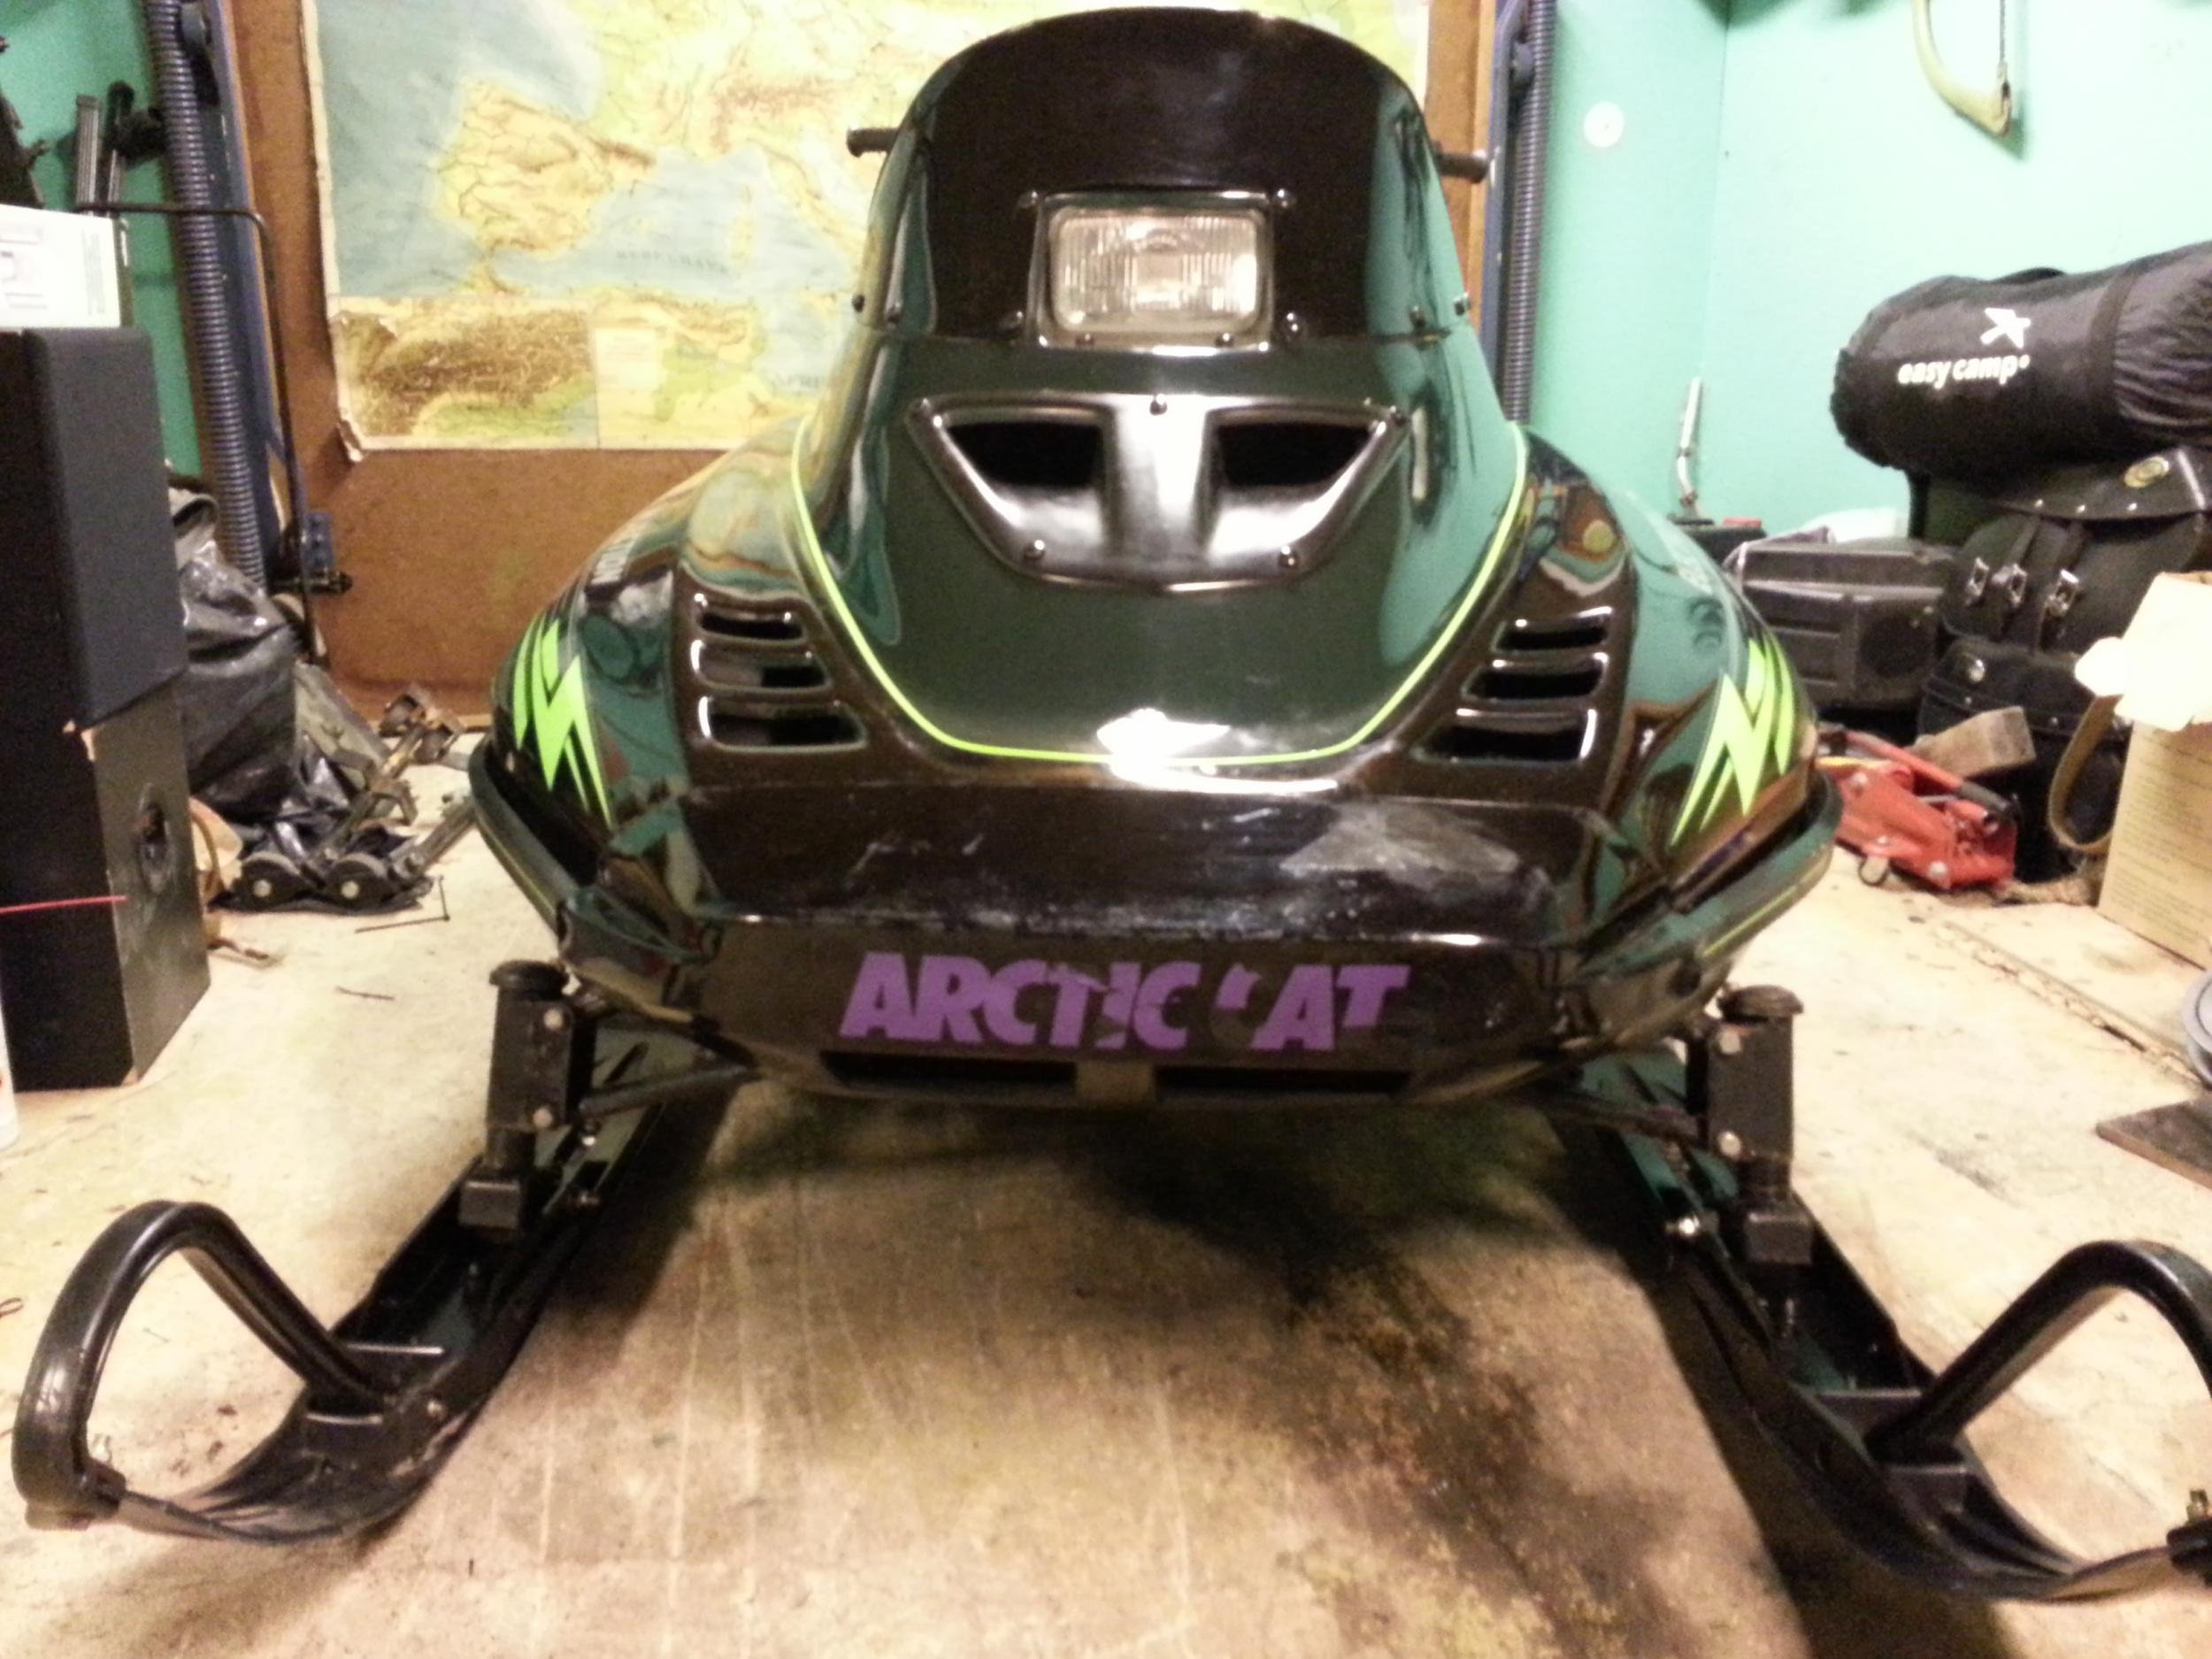 2001 Arctic Cat Wildcat Snowmobile 1988 Wiring Diagram Click Image For Larger Version Name Views Size 2500x1875